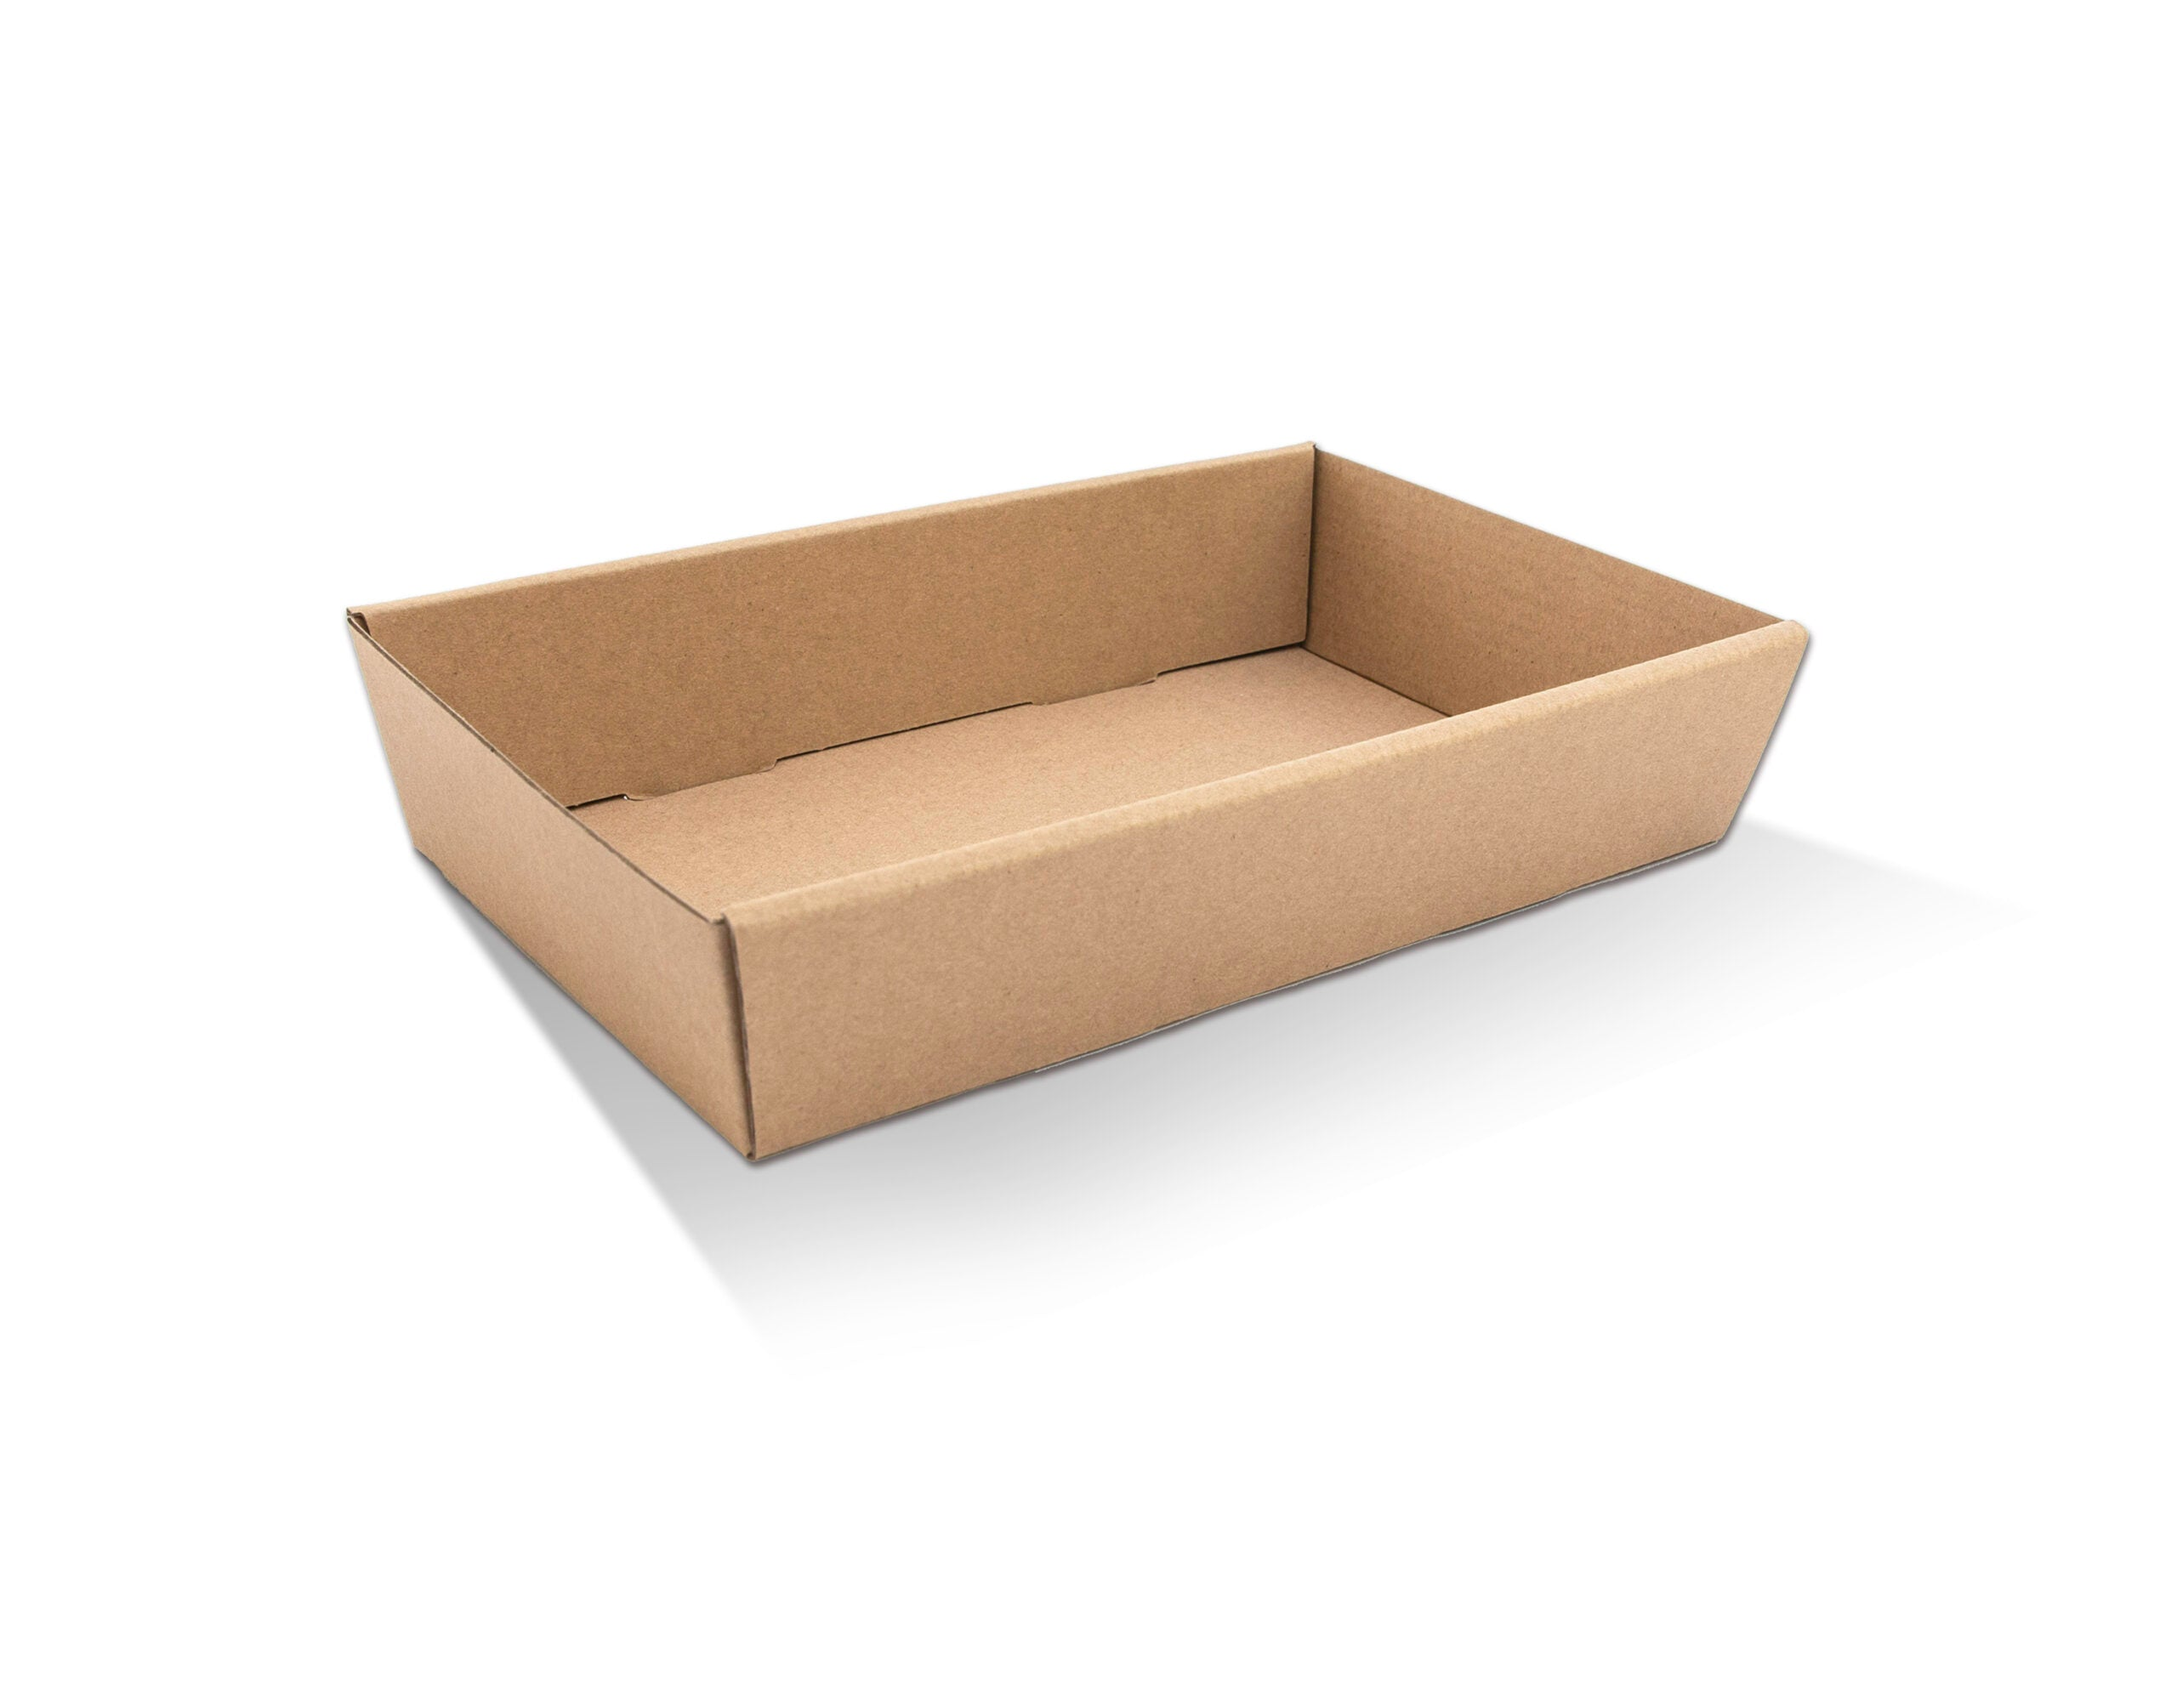 Brown Catering Tray - Large 50mm High